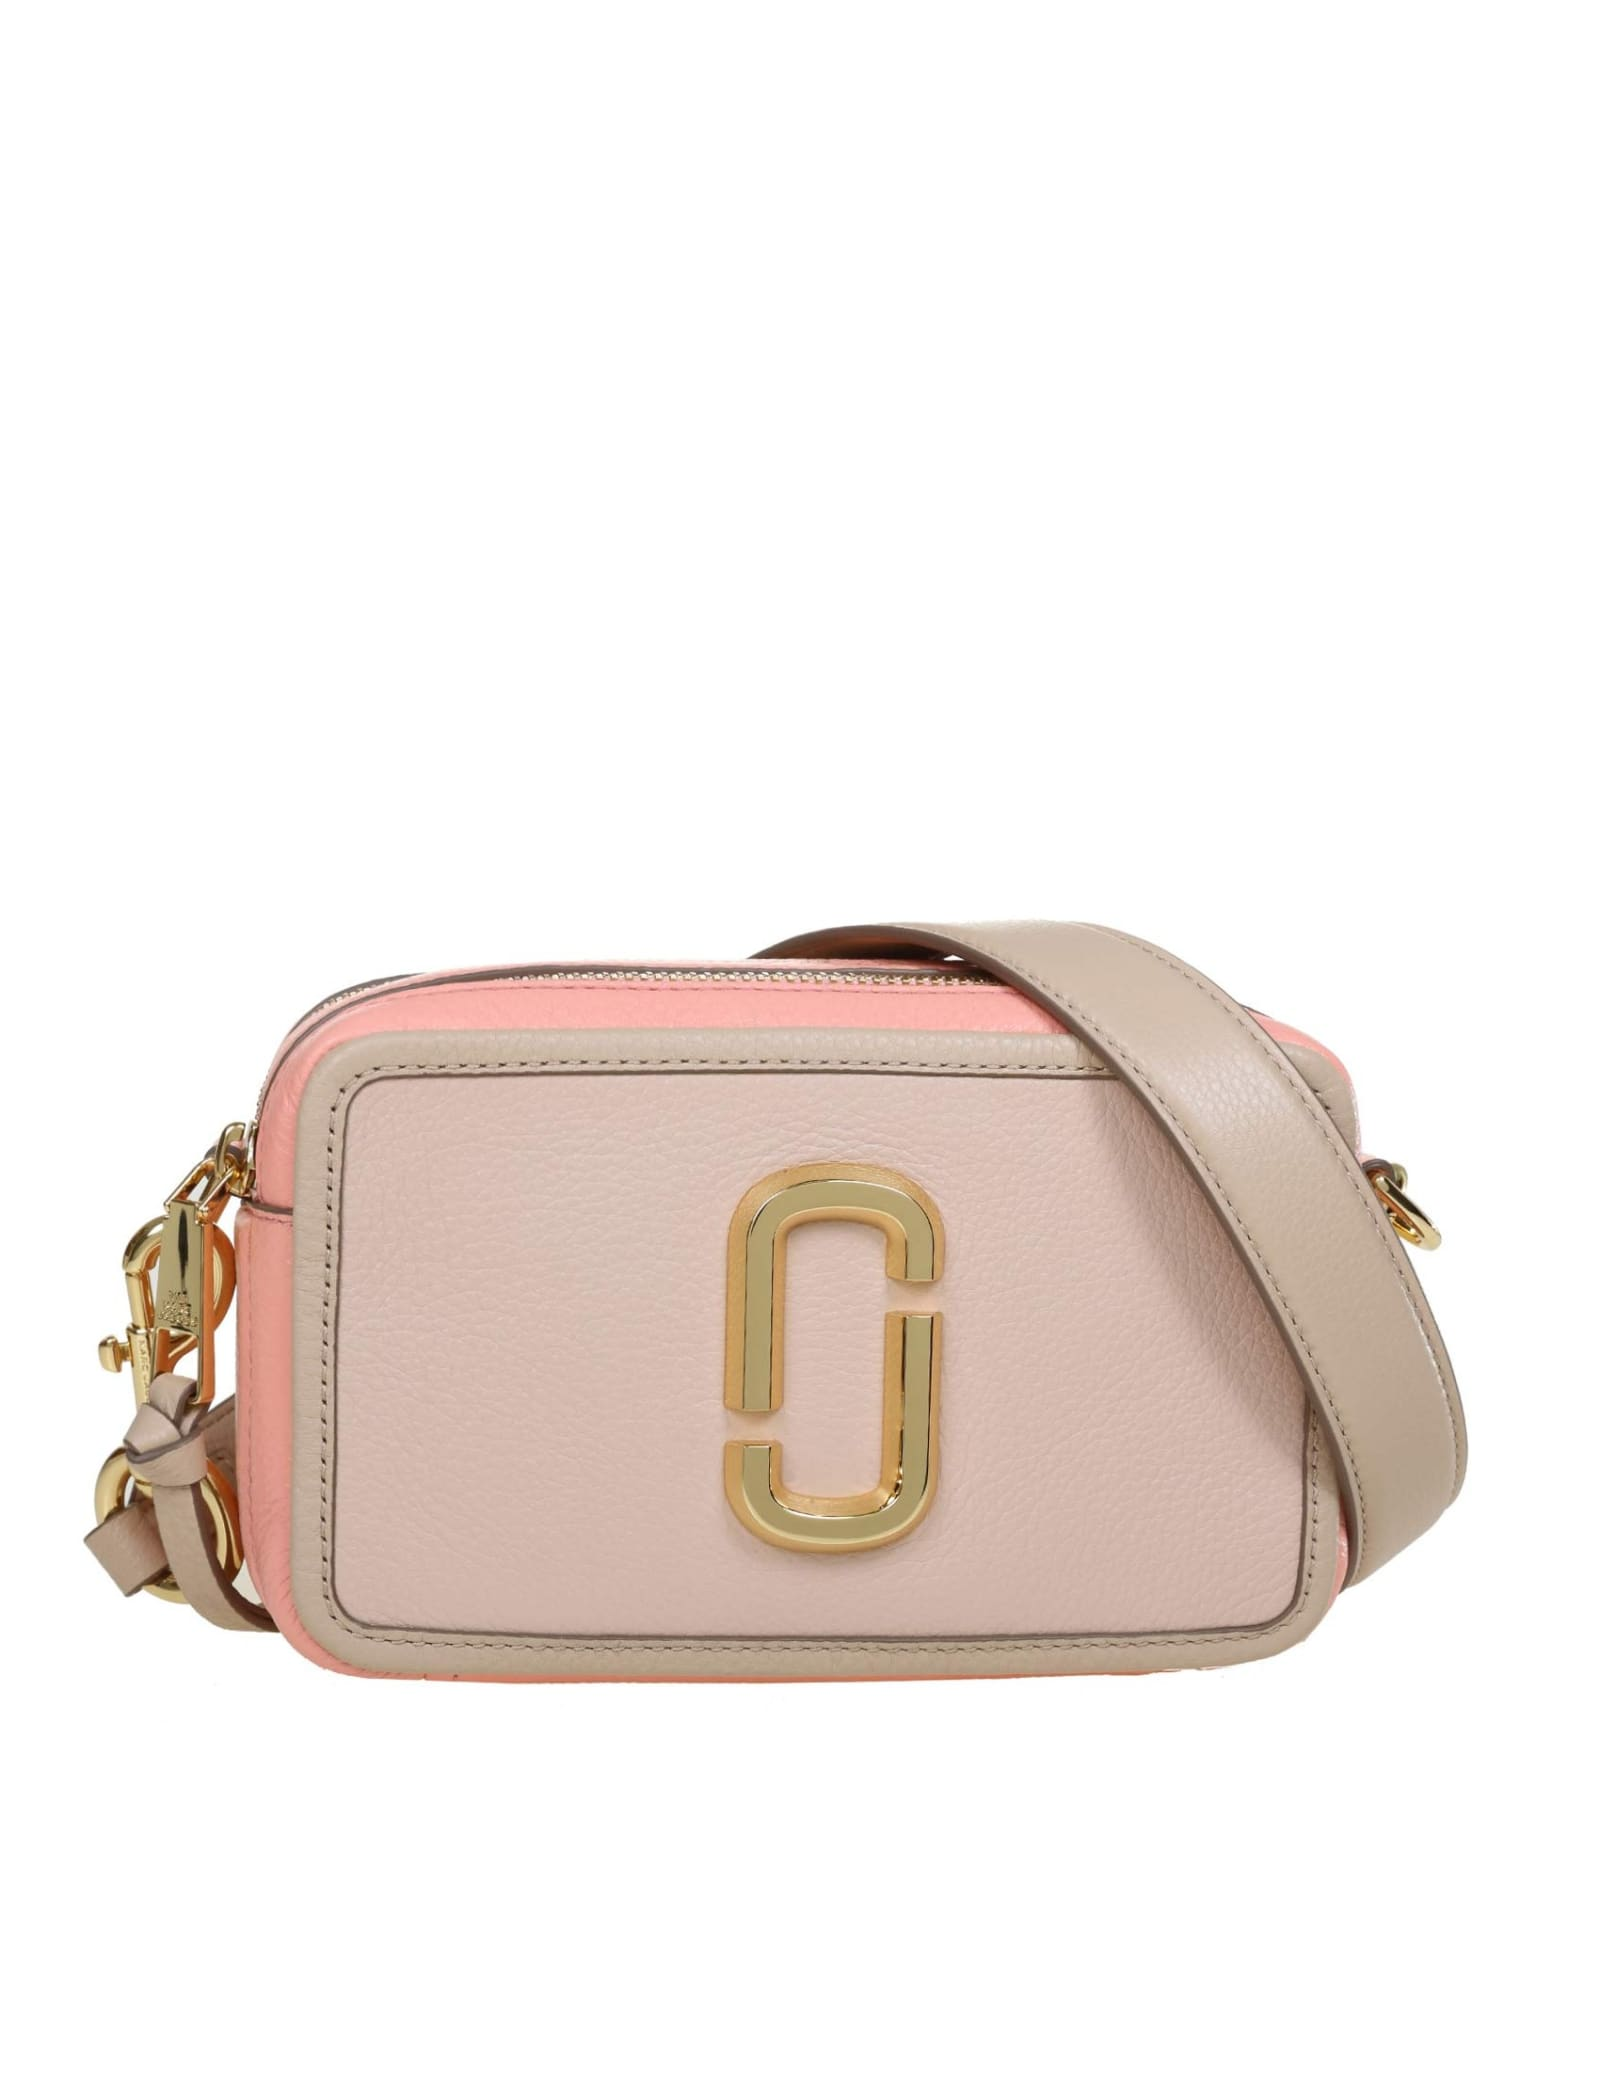 Marc Jacobs The Quilted In Apricot Color Leather